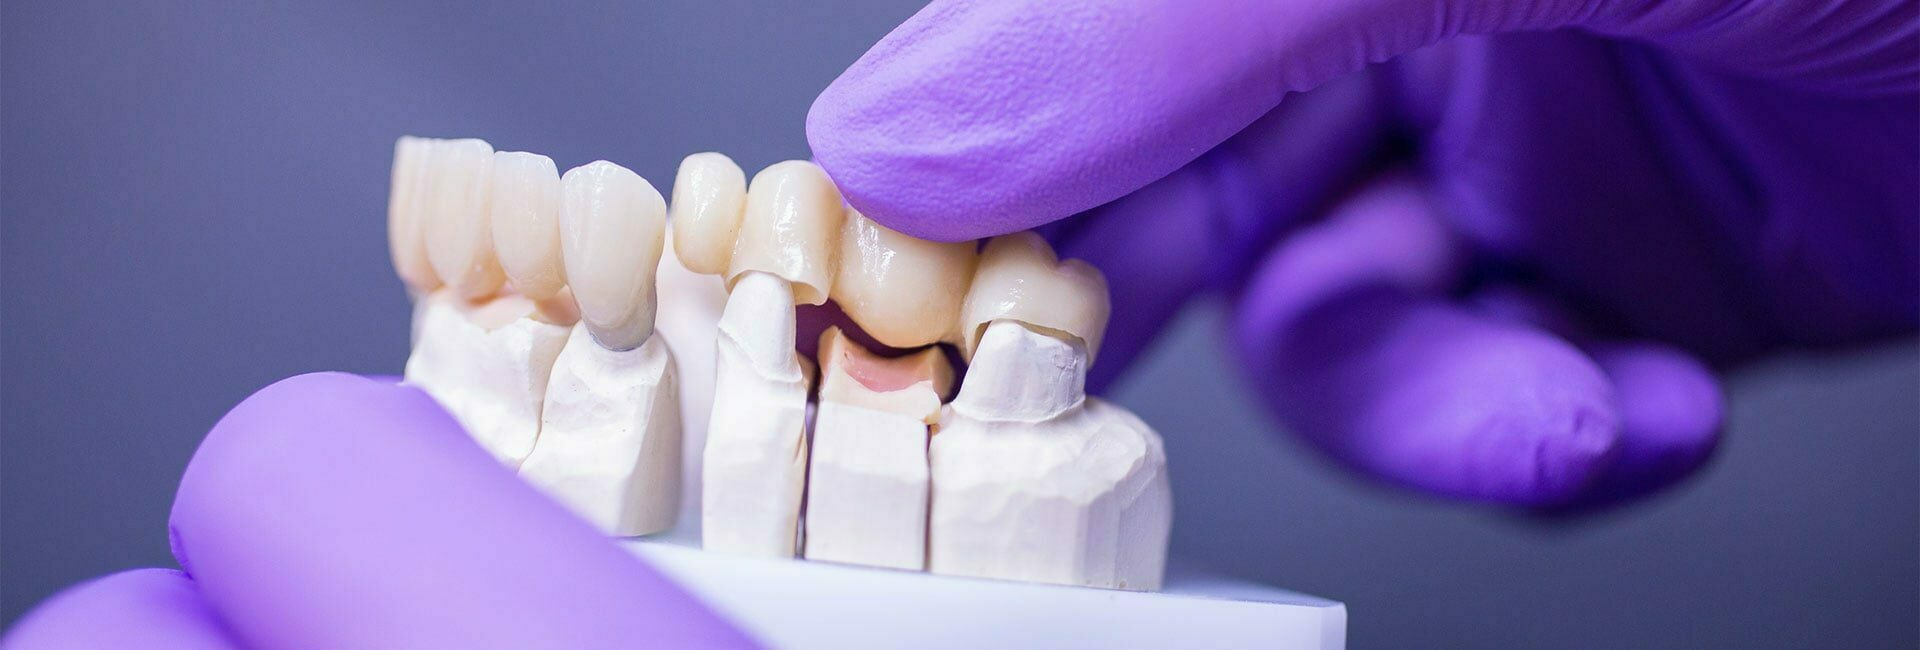 Dentures and Dental Prostheses